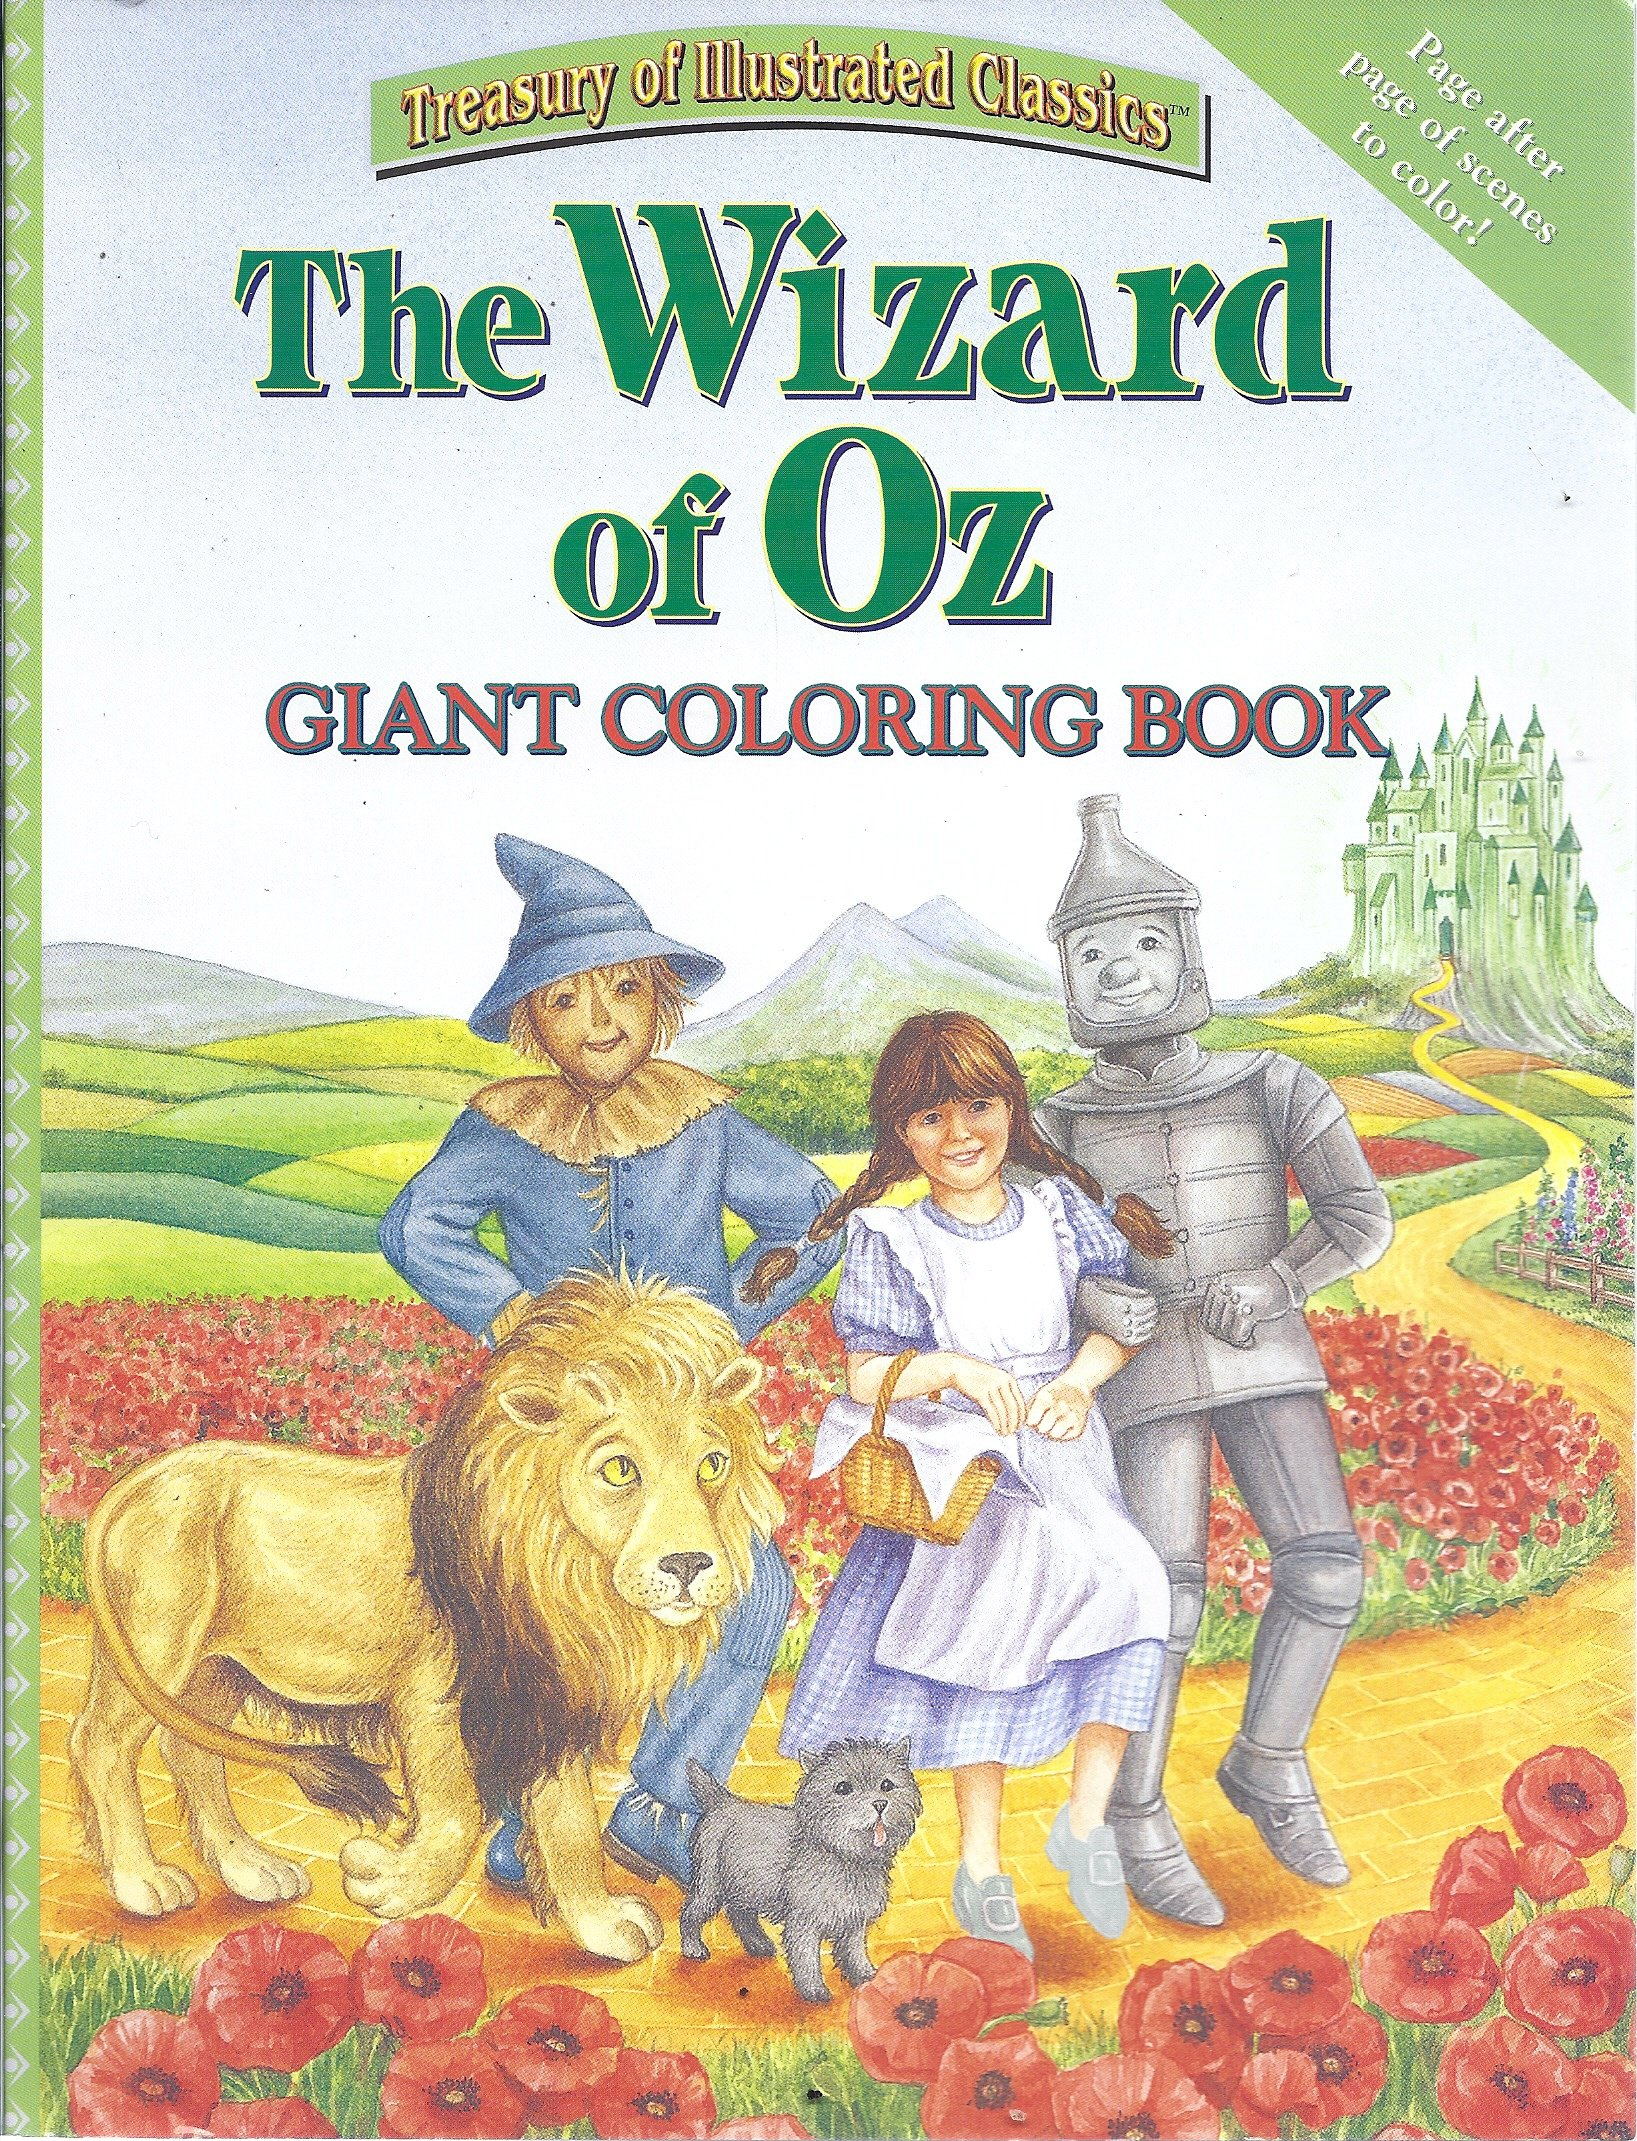 the wizard of oz giant coloring book treasury of illustrated classics unknown 9780766613300 amazoncom books - Giant Coloring Book